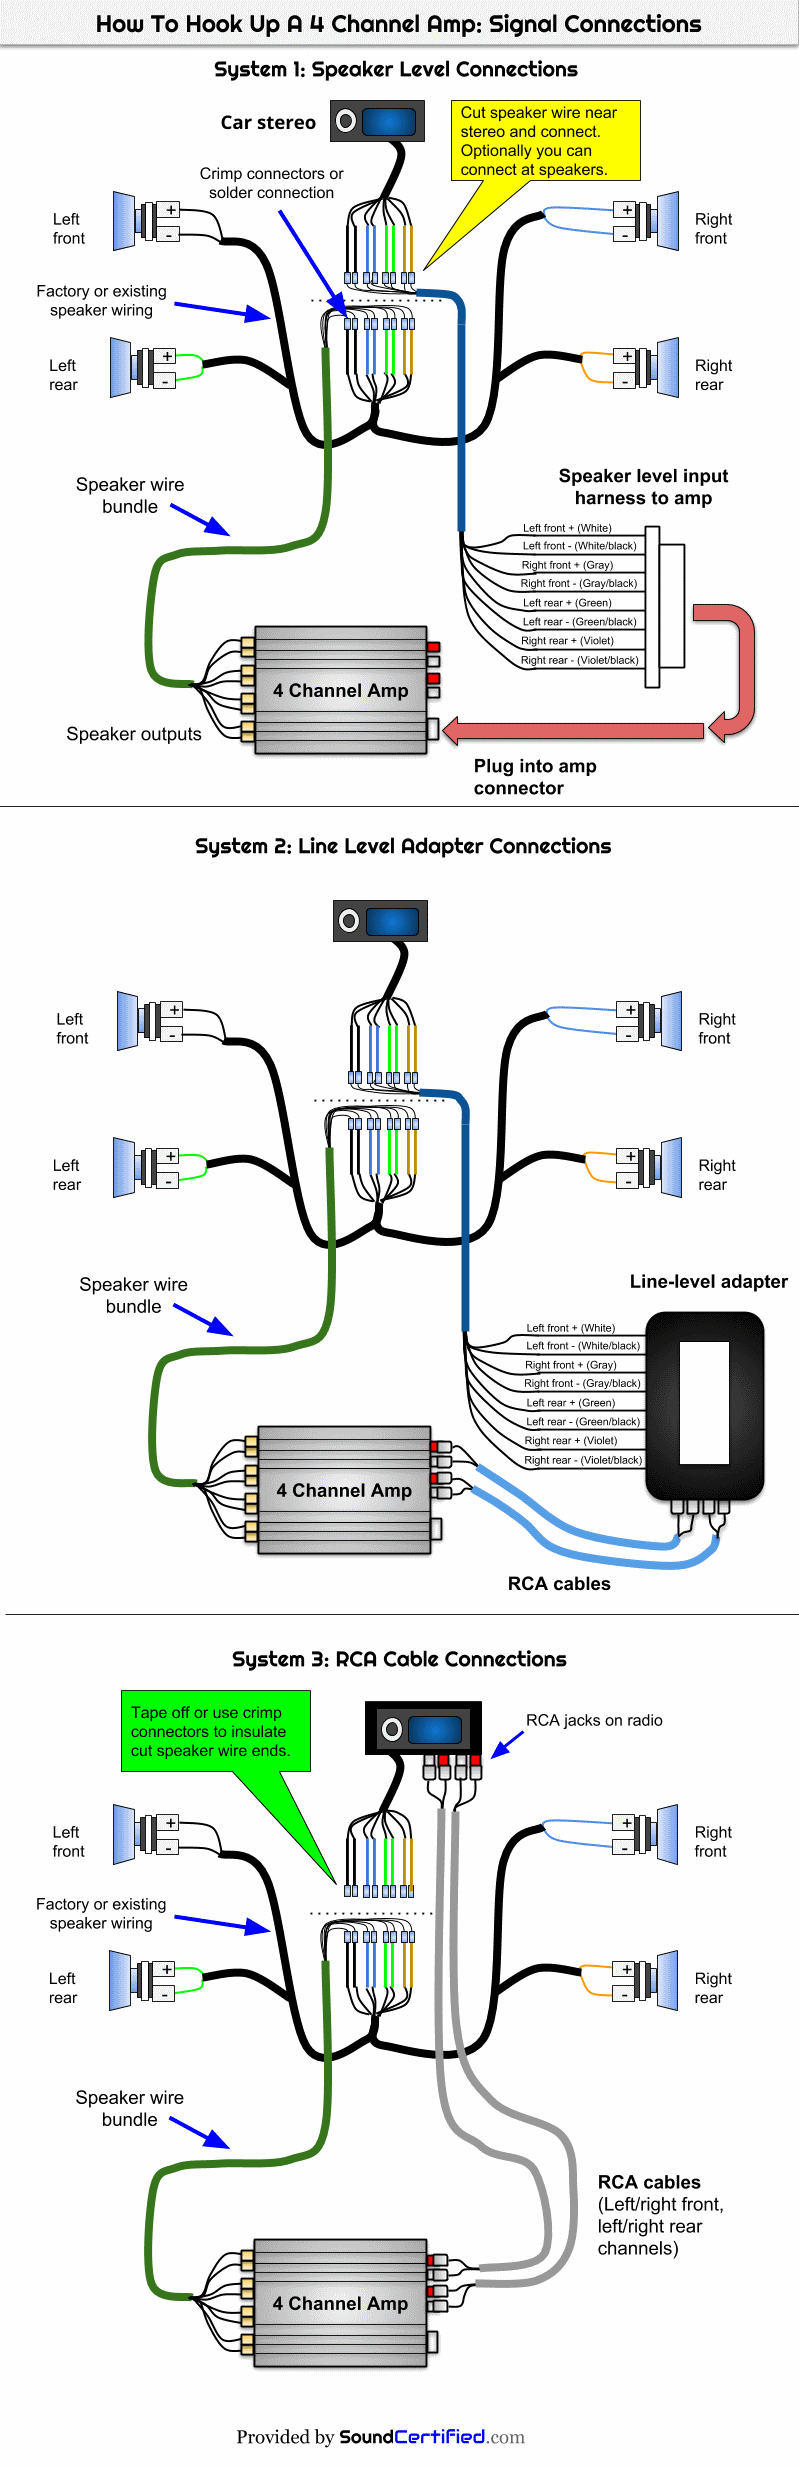 How To Hook Up A 4 Channel Amp To Front And Rear Speakers - Car Amplifier Wiring Diagram Installation